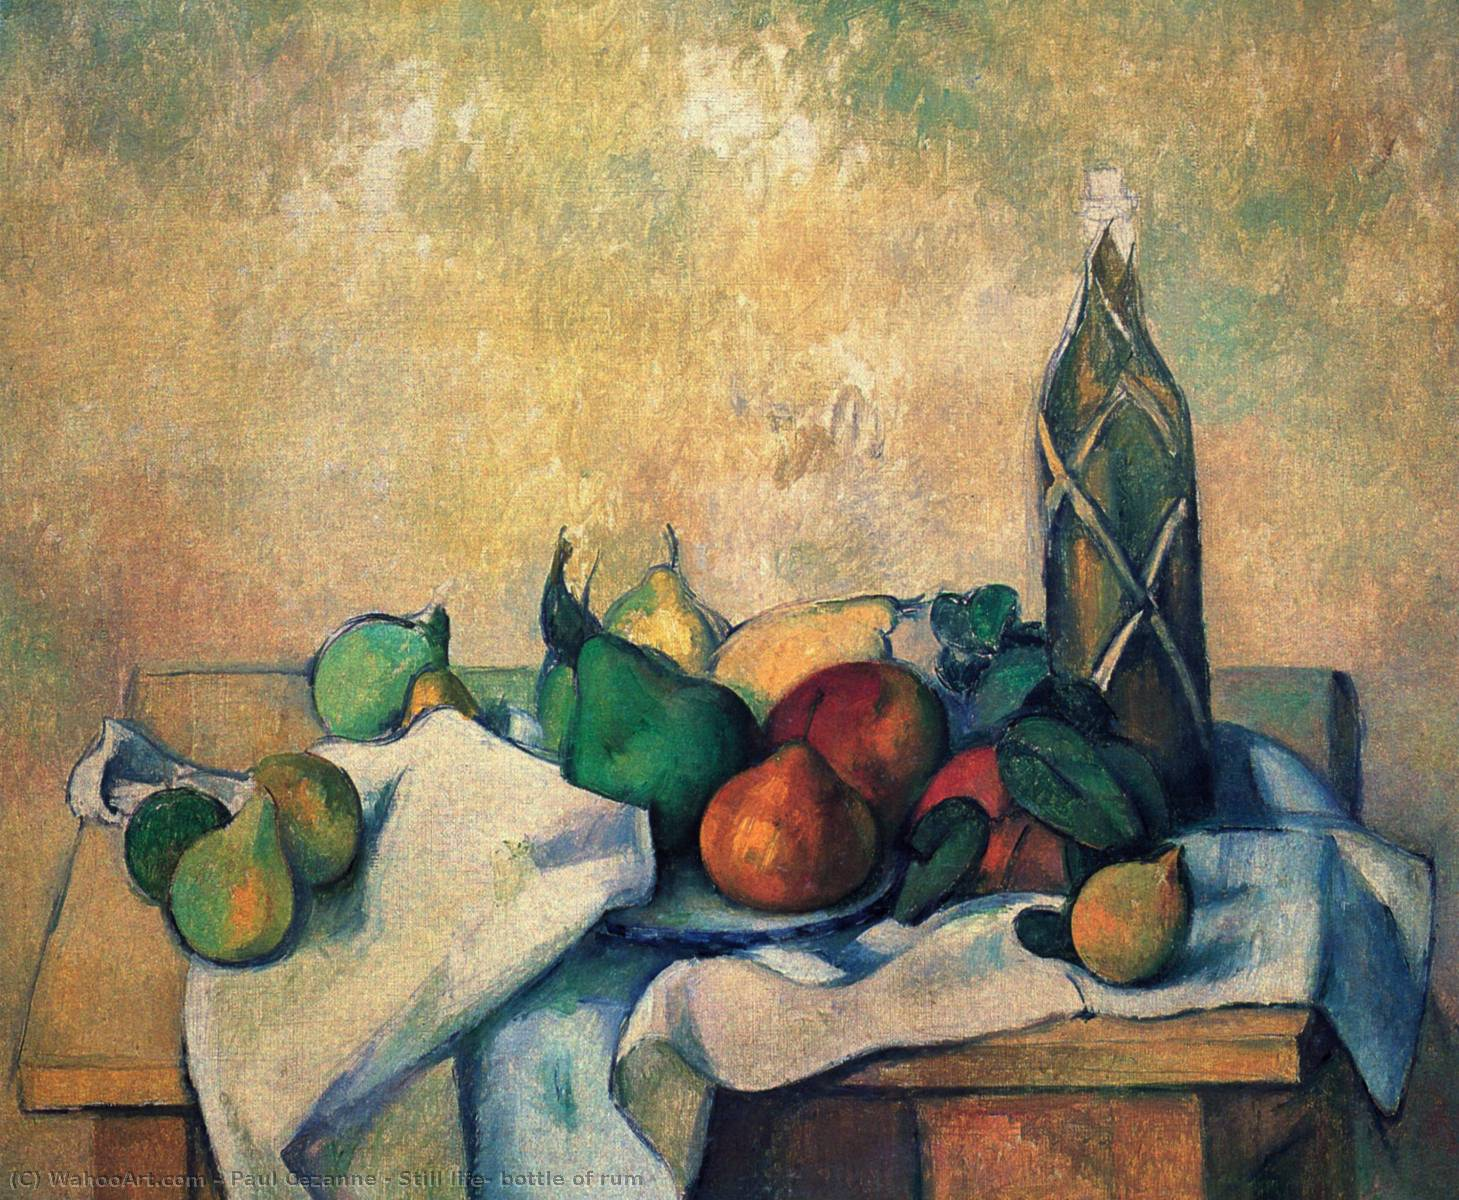 Nature Morte bouteille de biscornu, 1890 de Paul Cezanne (1839-1906, France) | Reproductions D'œuvres D'art Paul Cezanne | WahooArt.com